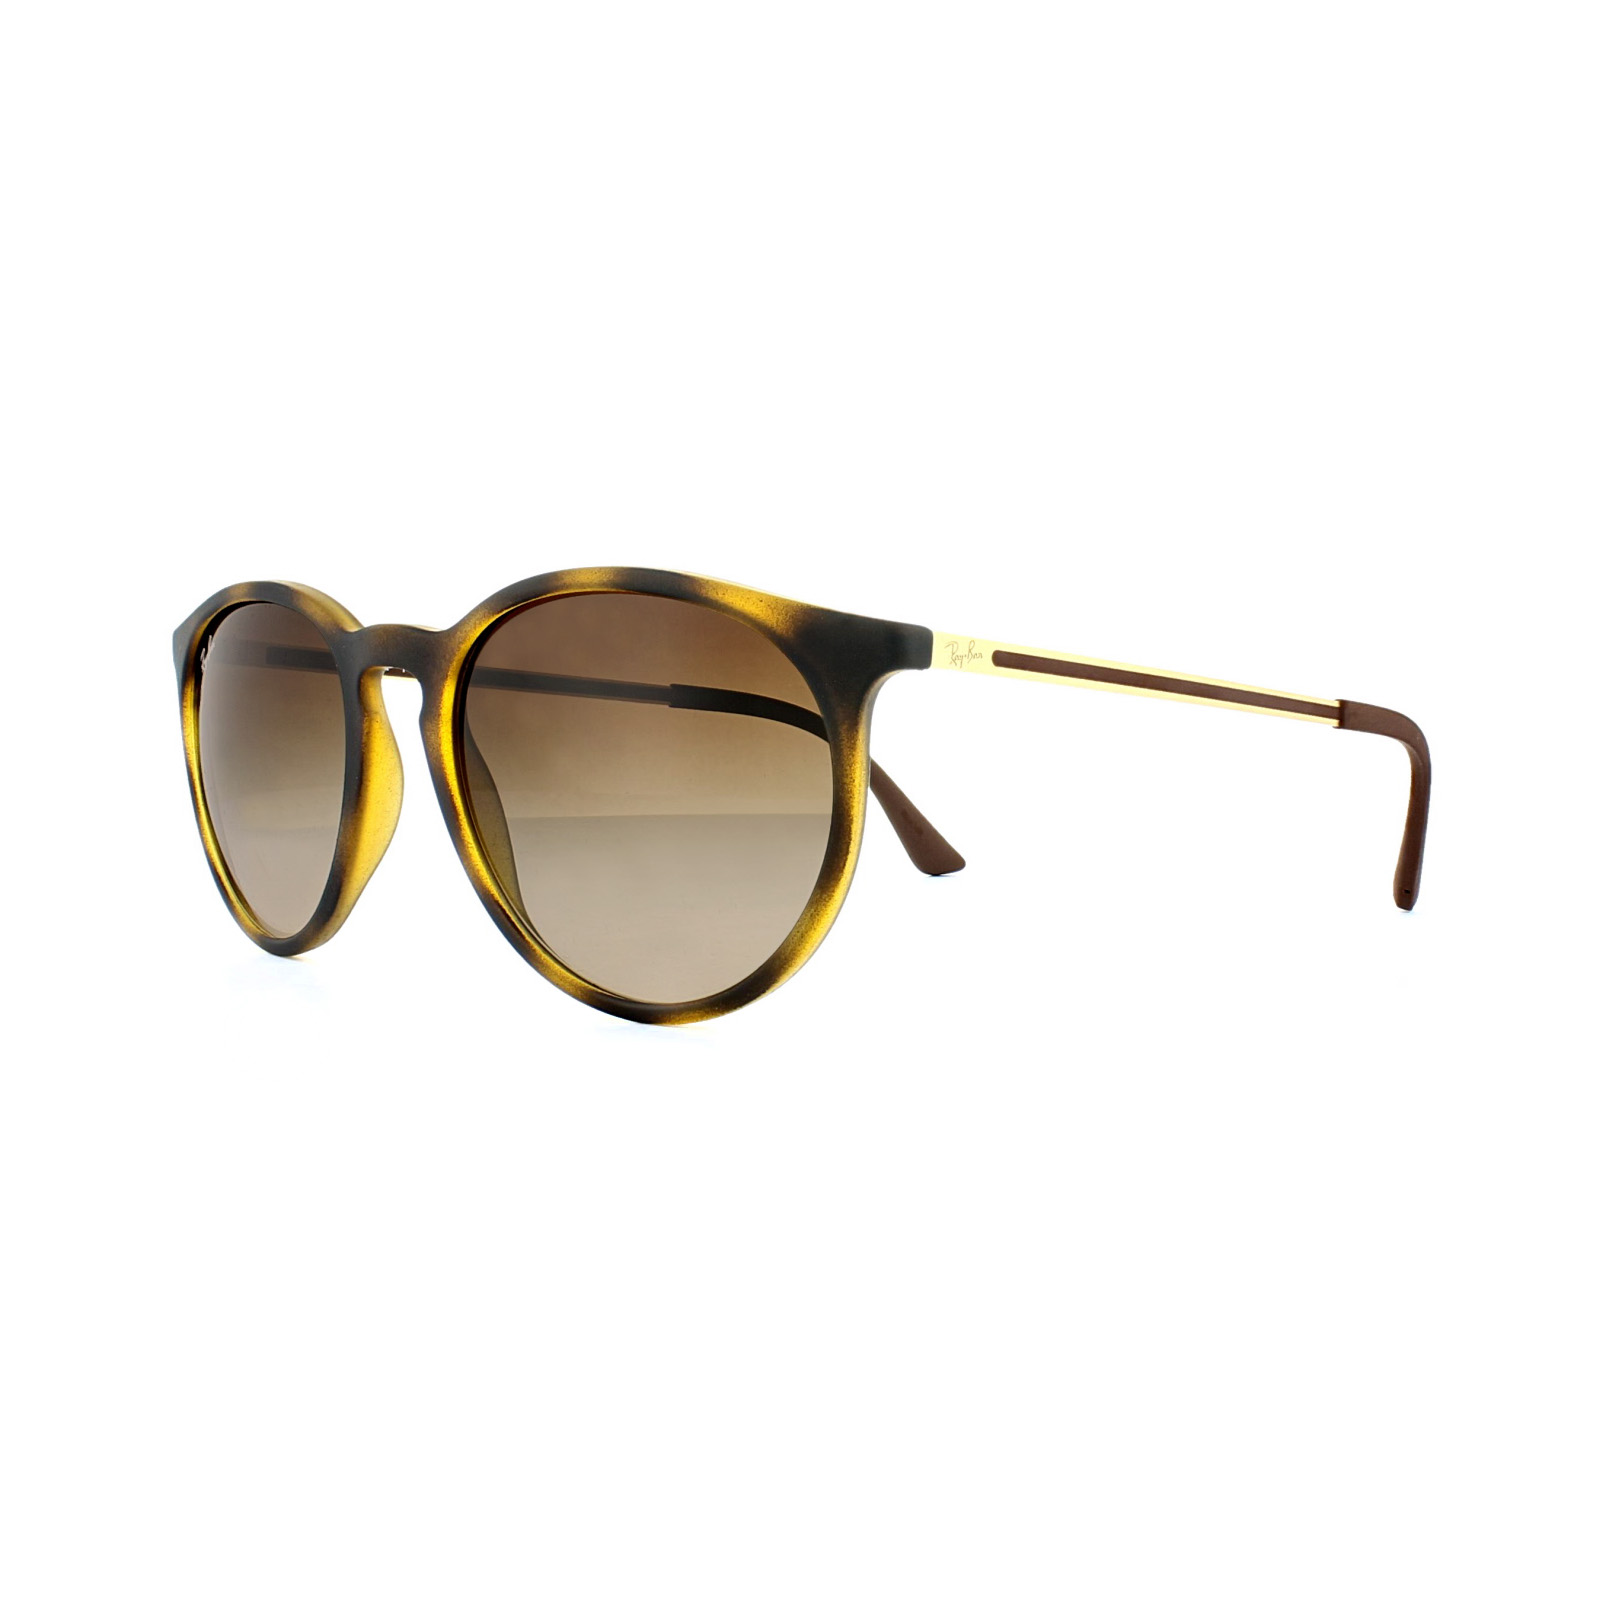 afd0b9a2d49 Sentinel Ray-Ban Sunglasses 4274 856 13 Light Havana Rubber Brown Gradient